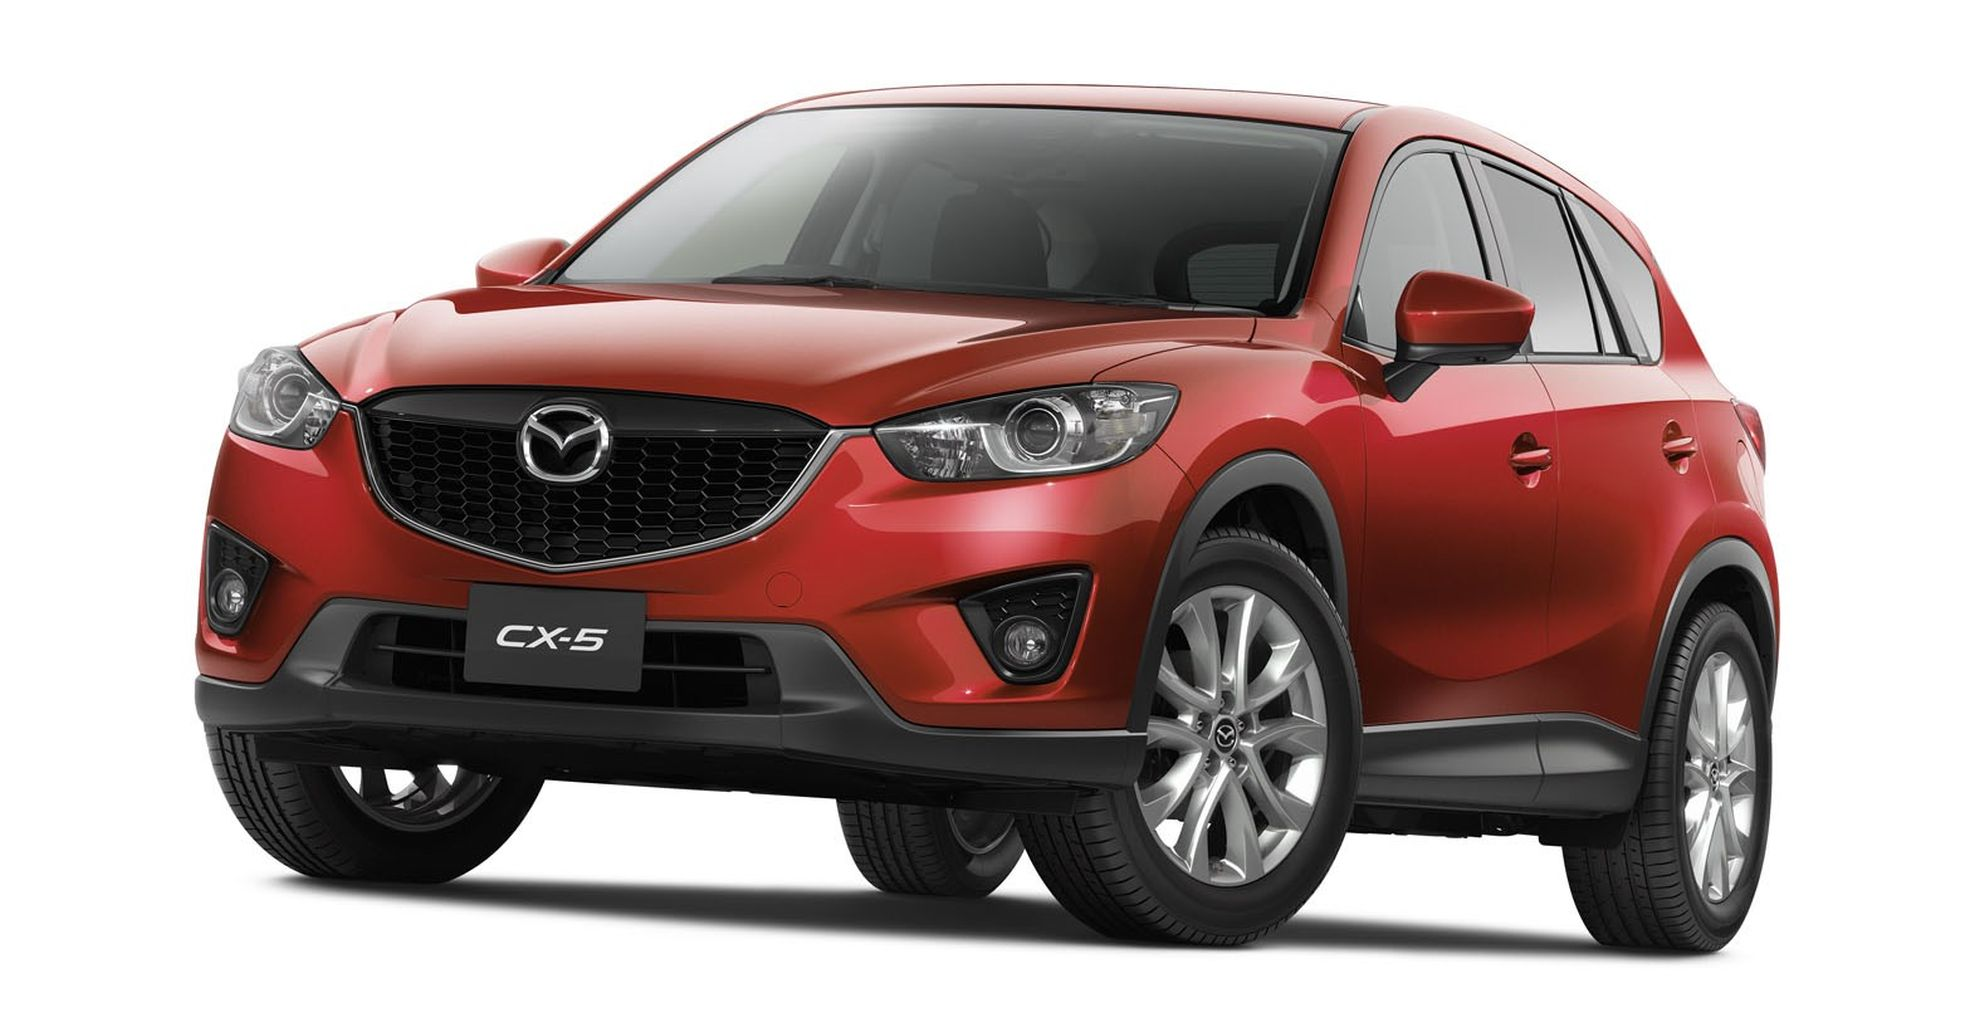 Mazda-CX-5-Global-Production-Reaches-One-Million-Units